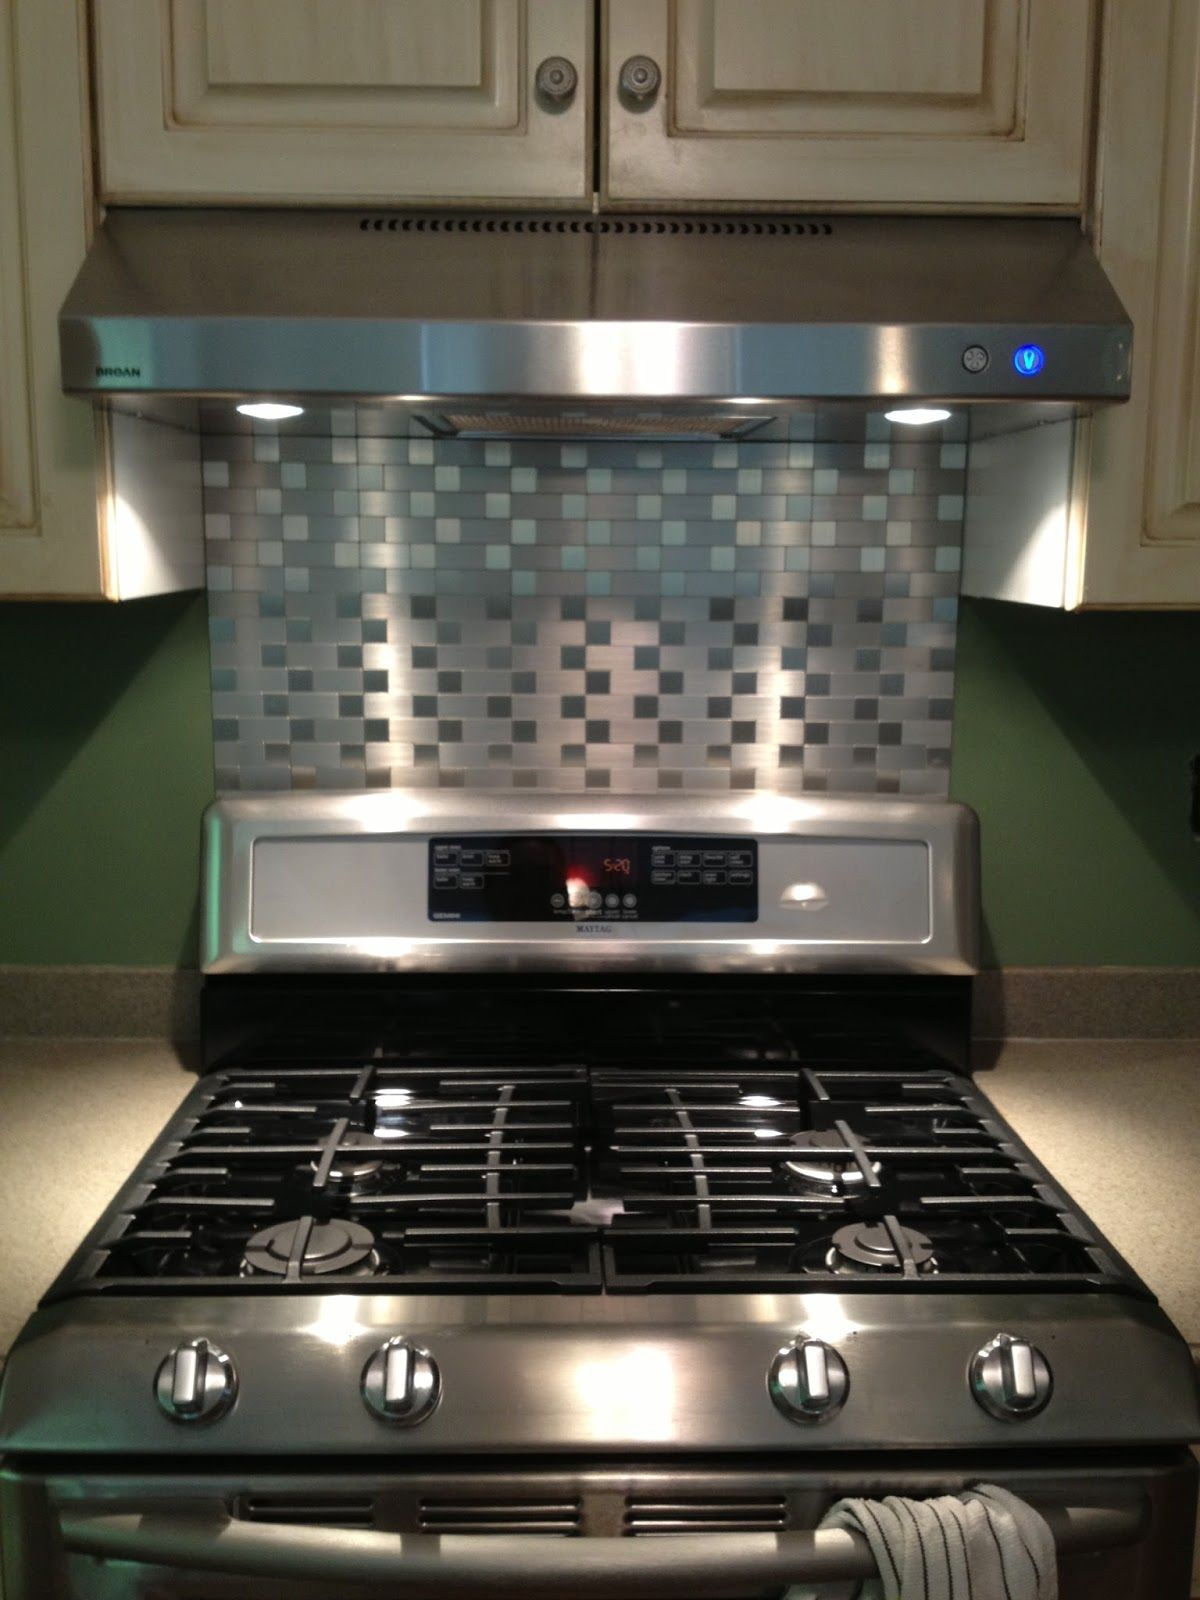 easy to install kitchen backsplash maconahouse blogspot com metallic peel and stick instant mosaic tiles for a backsplash so 8847